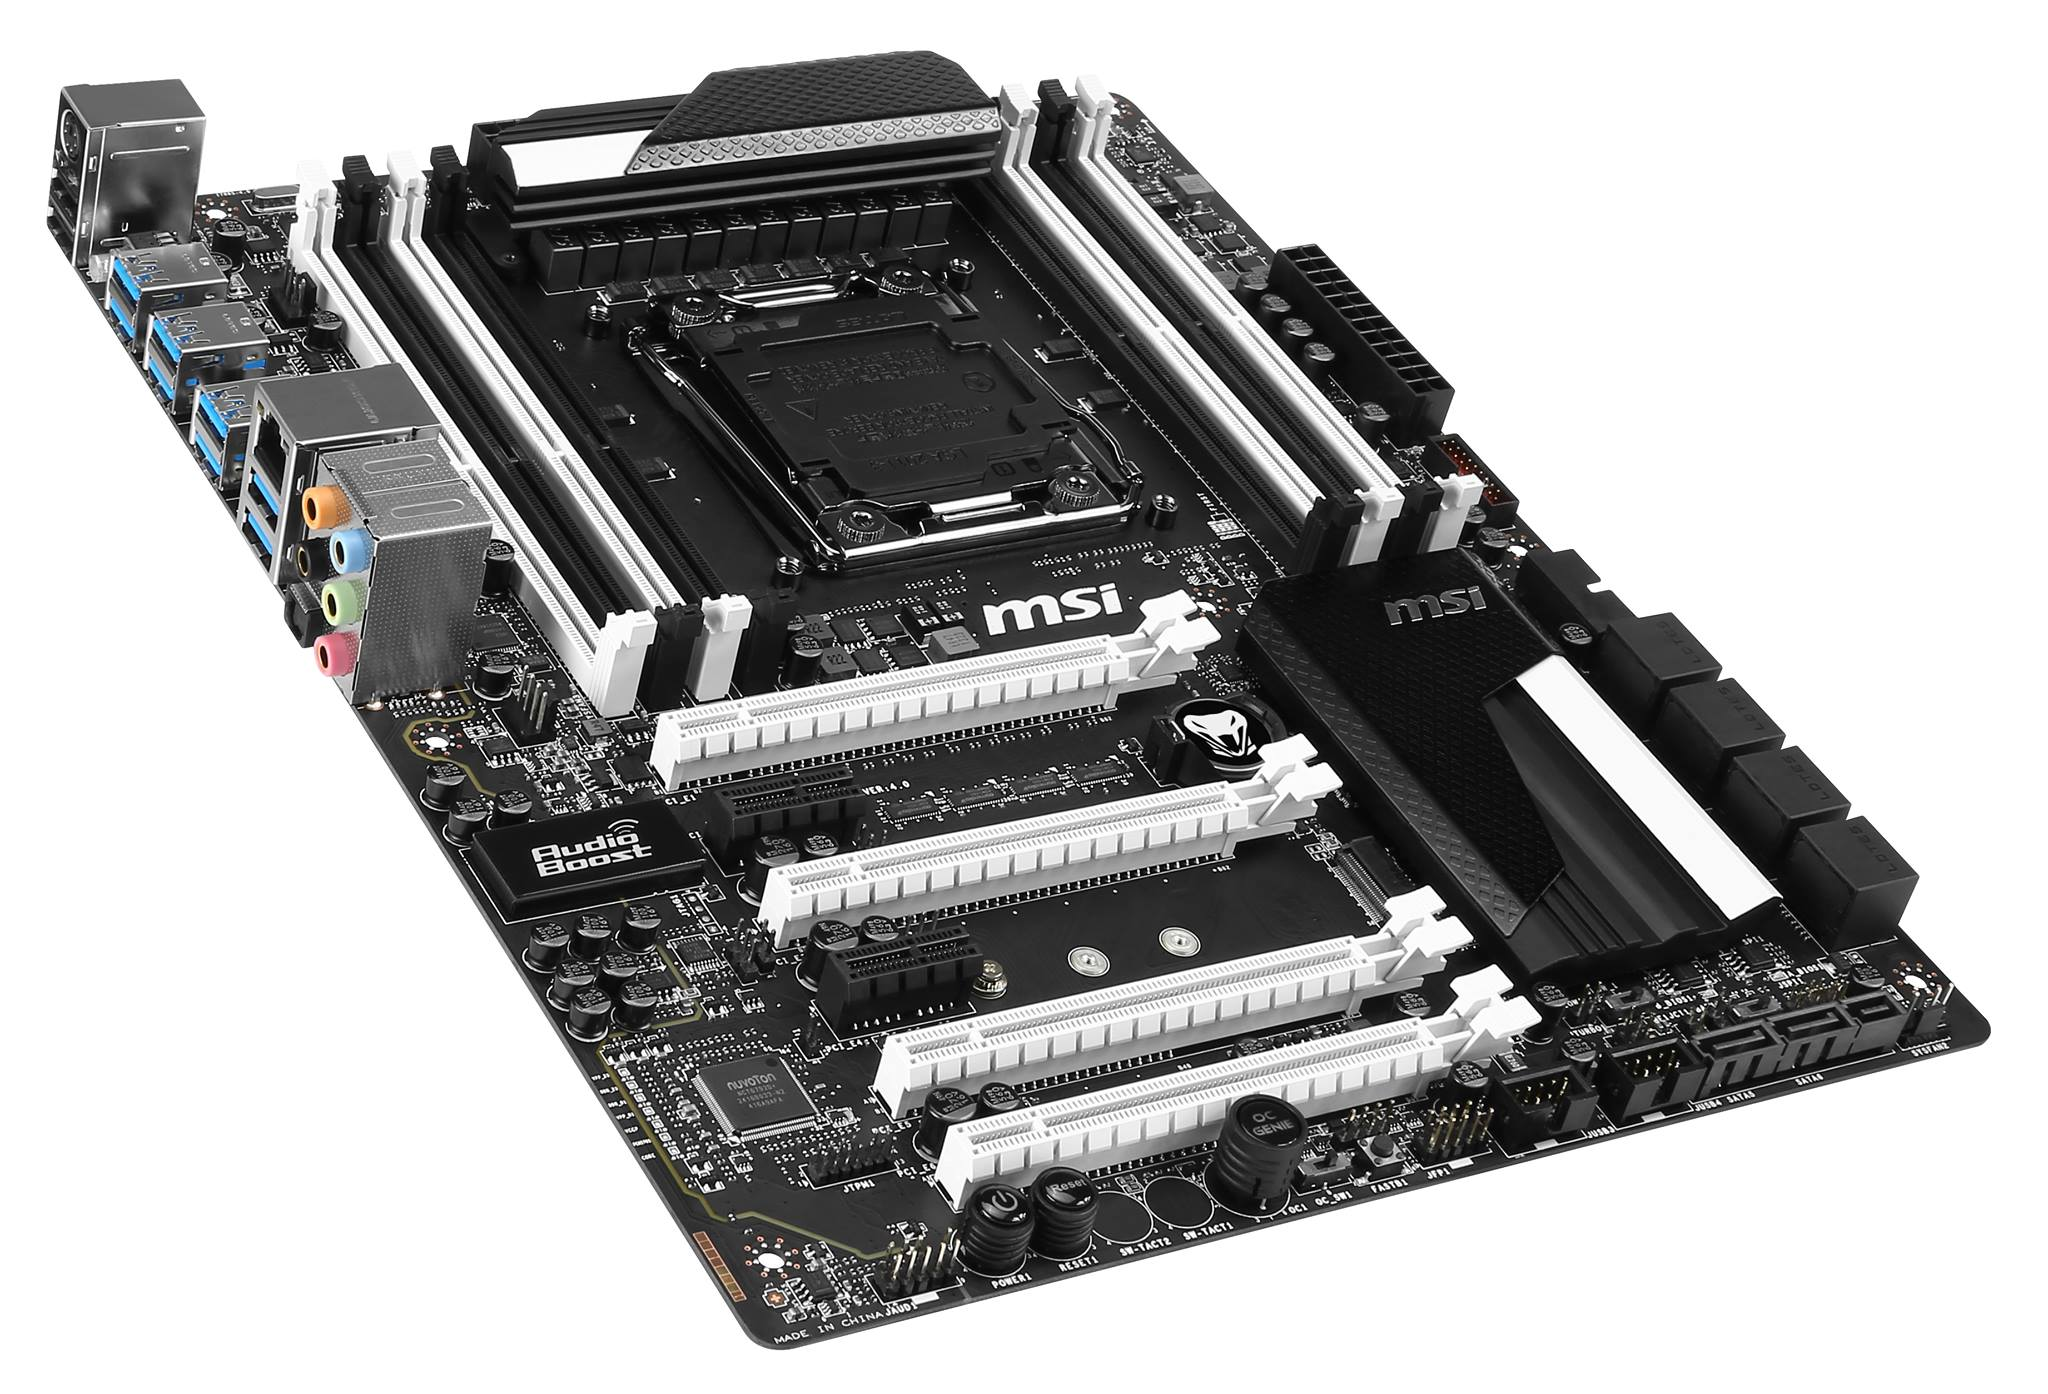 msi x99s sli krait edition motherboard pictured features black and white color scheme to. Black Bedroom Furniture Sets. Home Design Ideas